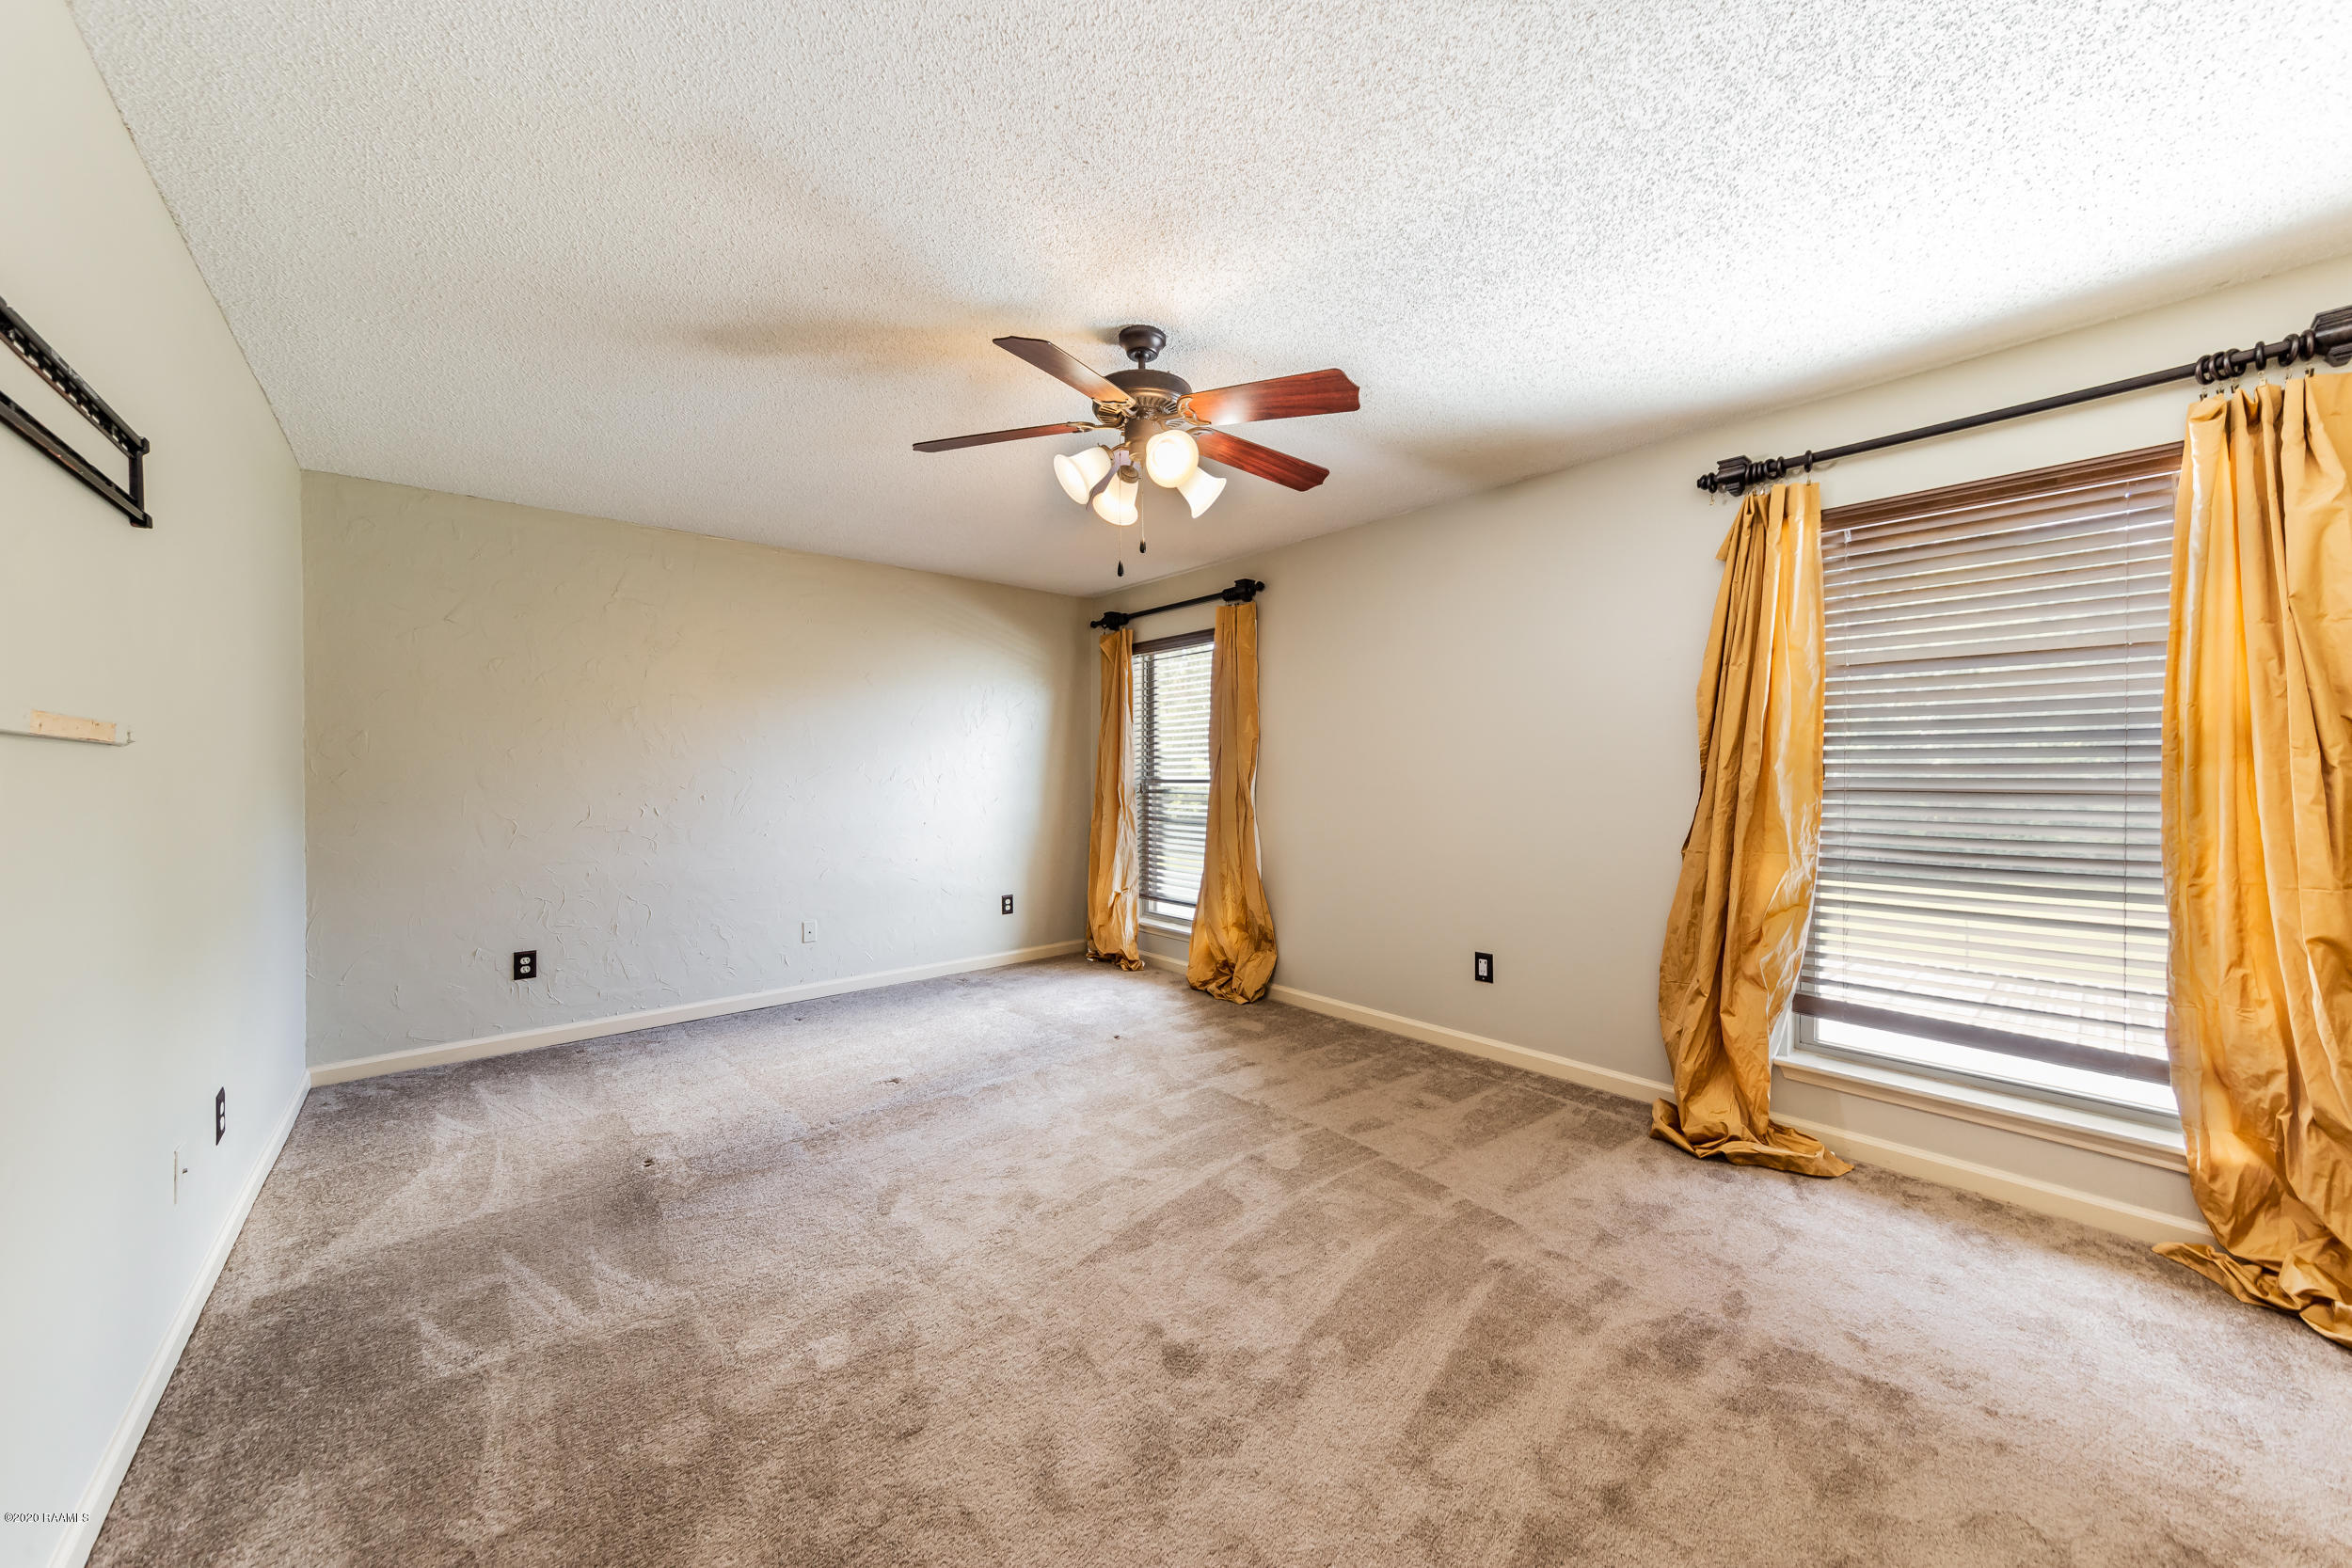 1008 Carriage Light Loop, Youngsville, LA 70592 Photo #13